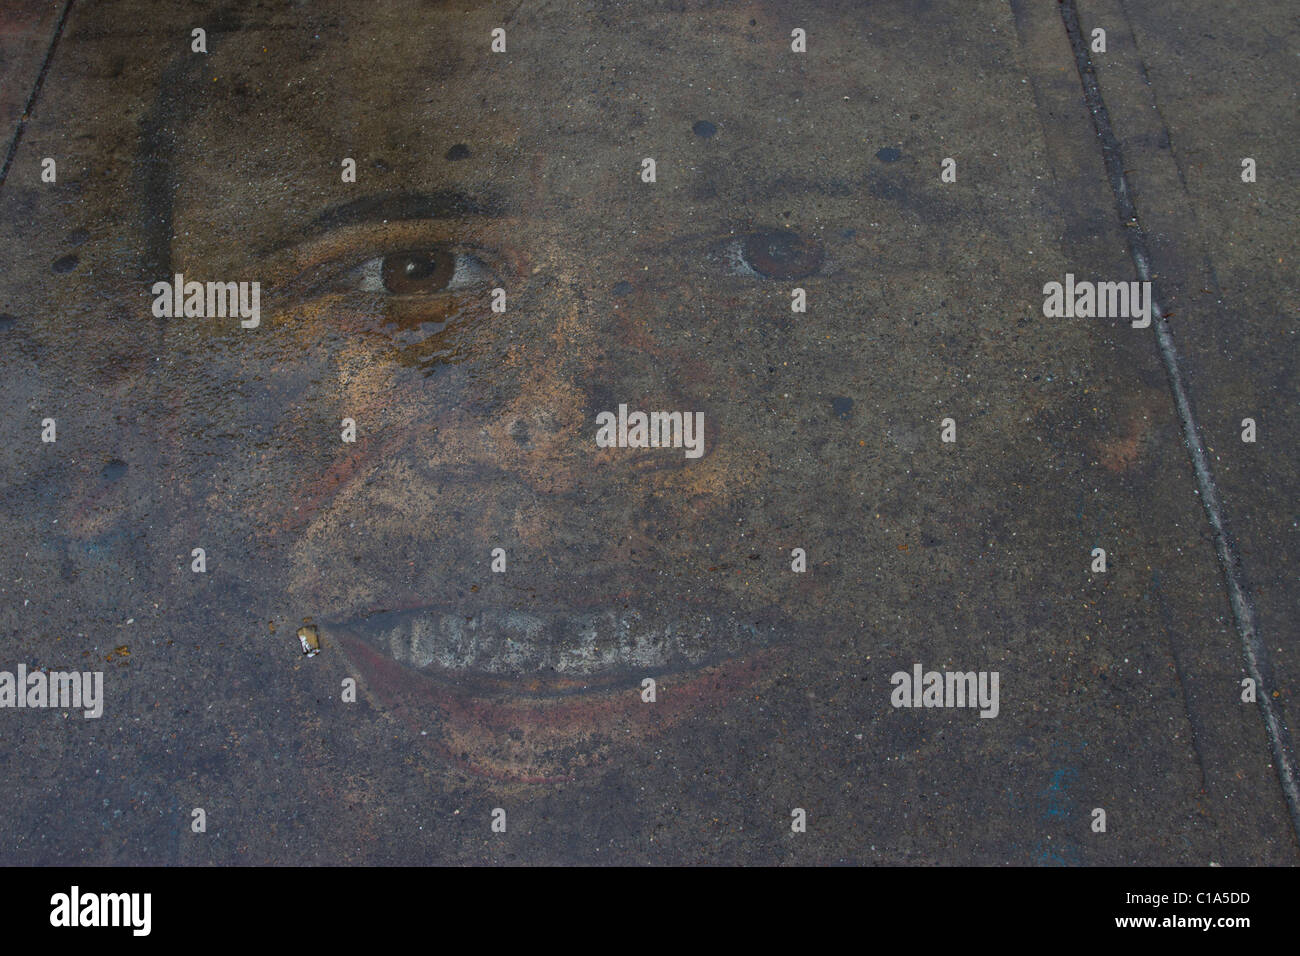 Street artist's fading rendering of Barack Obama on a sidewalk in Manhattan on a rainy day - Stock Image